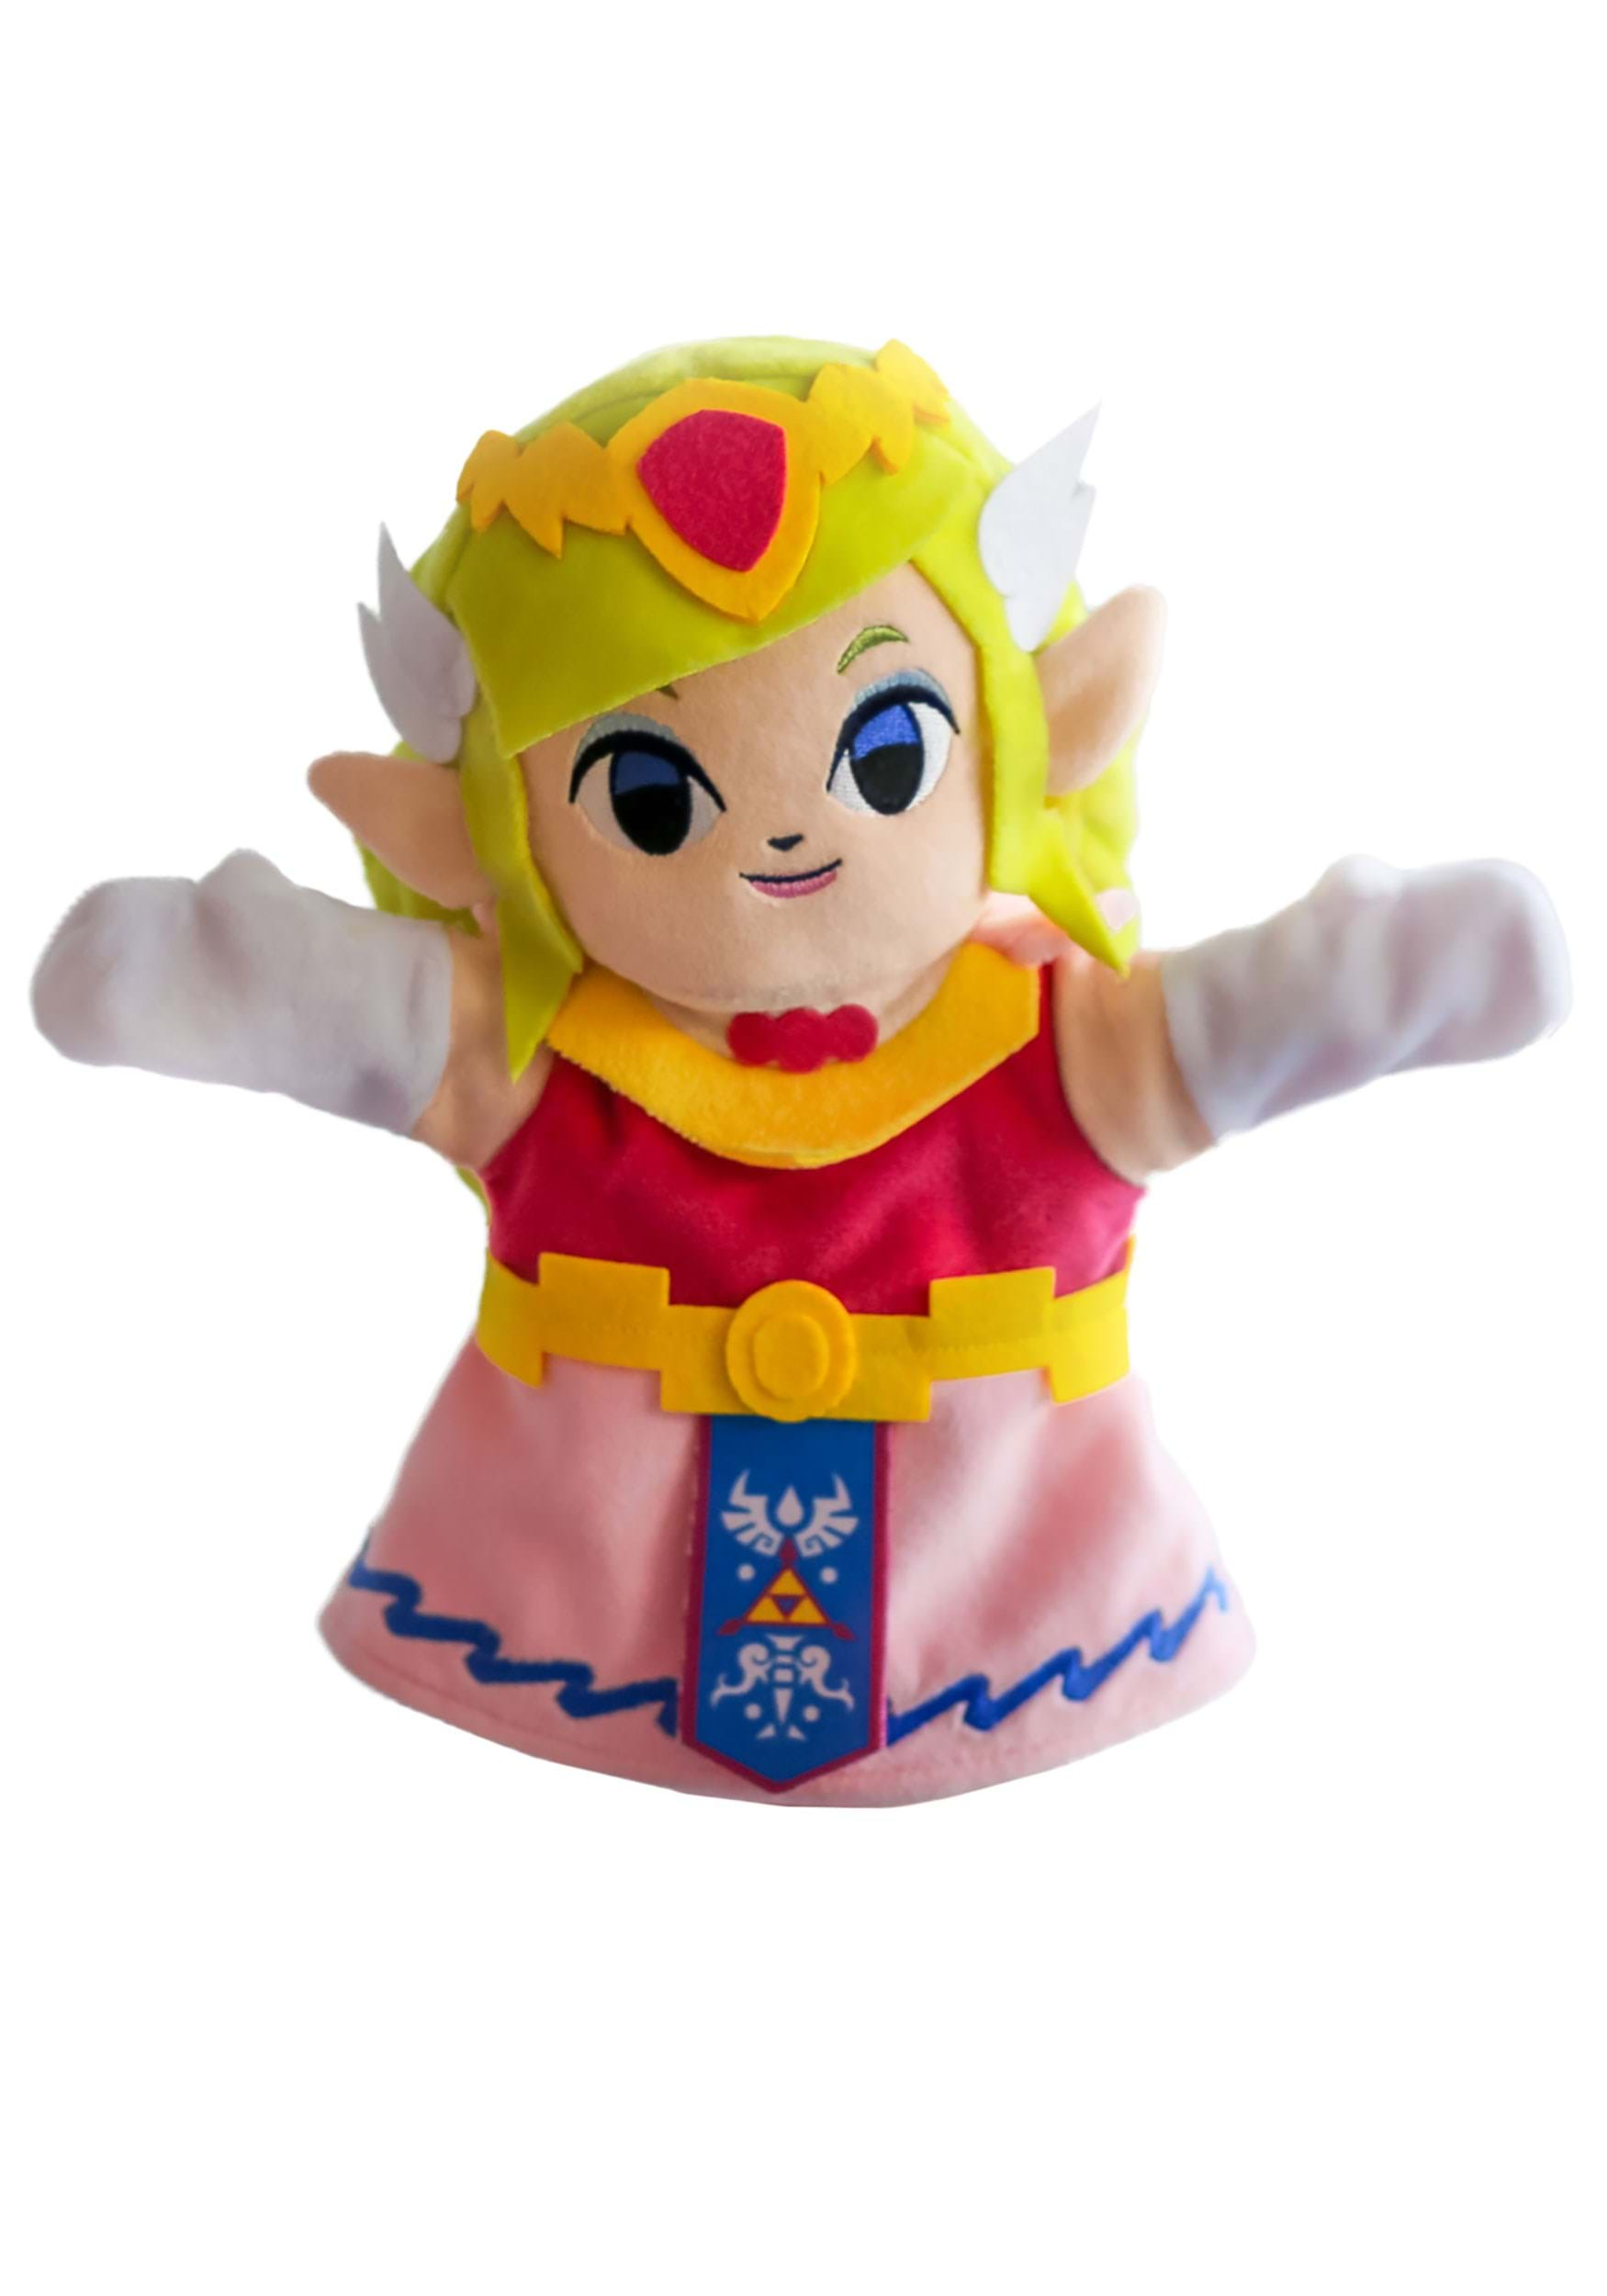 Nintendo Legend of Zelda Princess Zelda Puppet